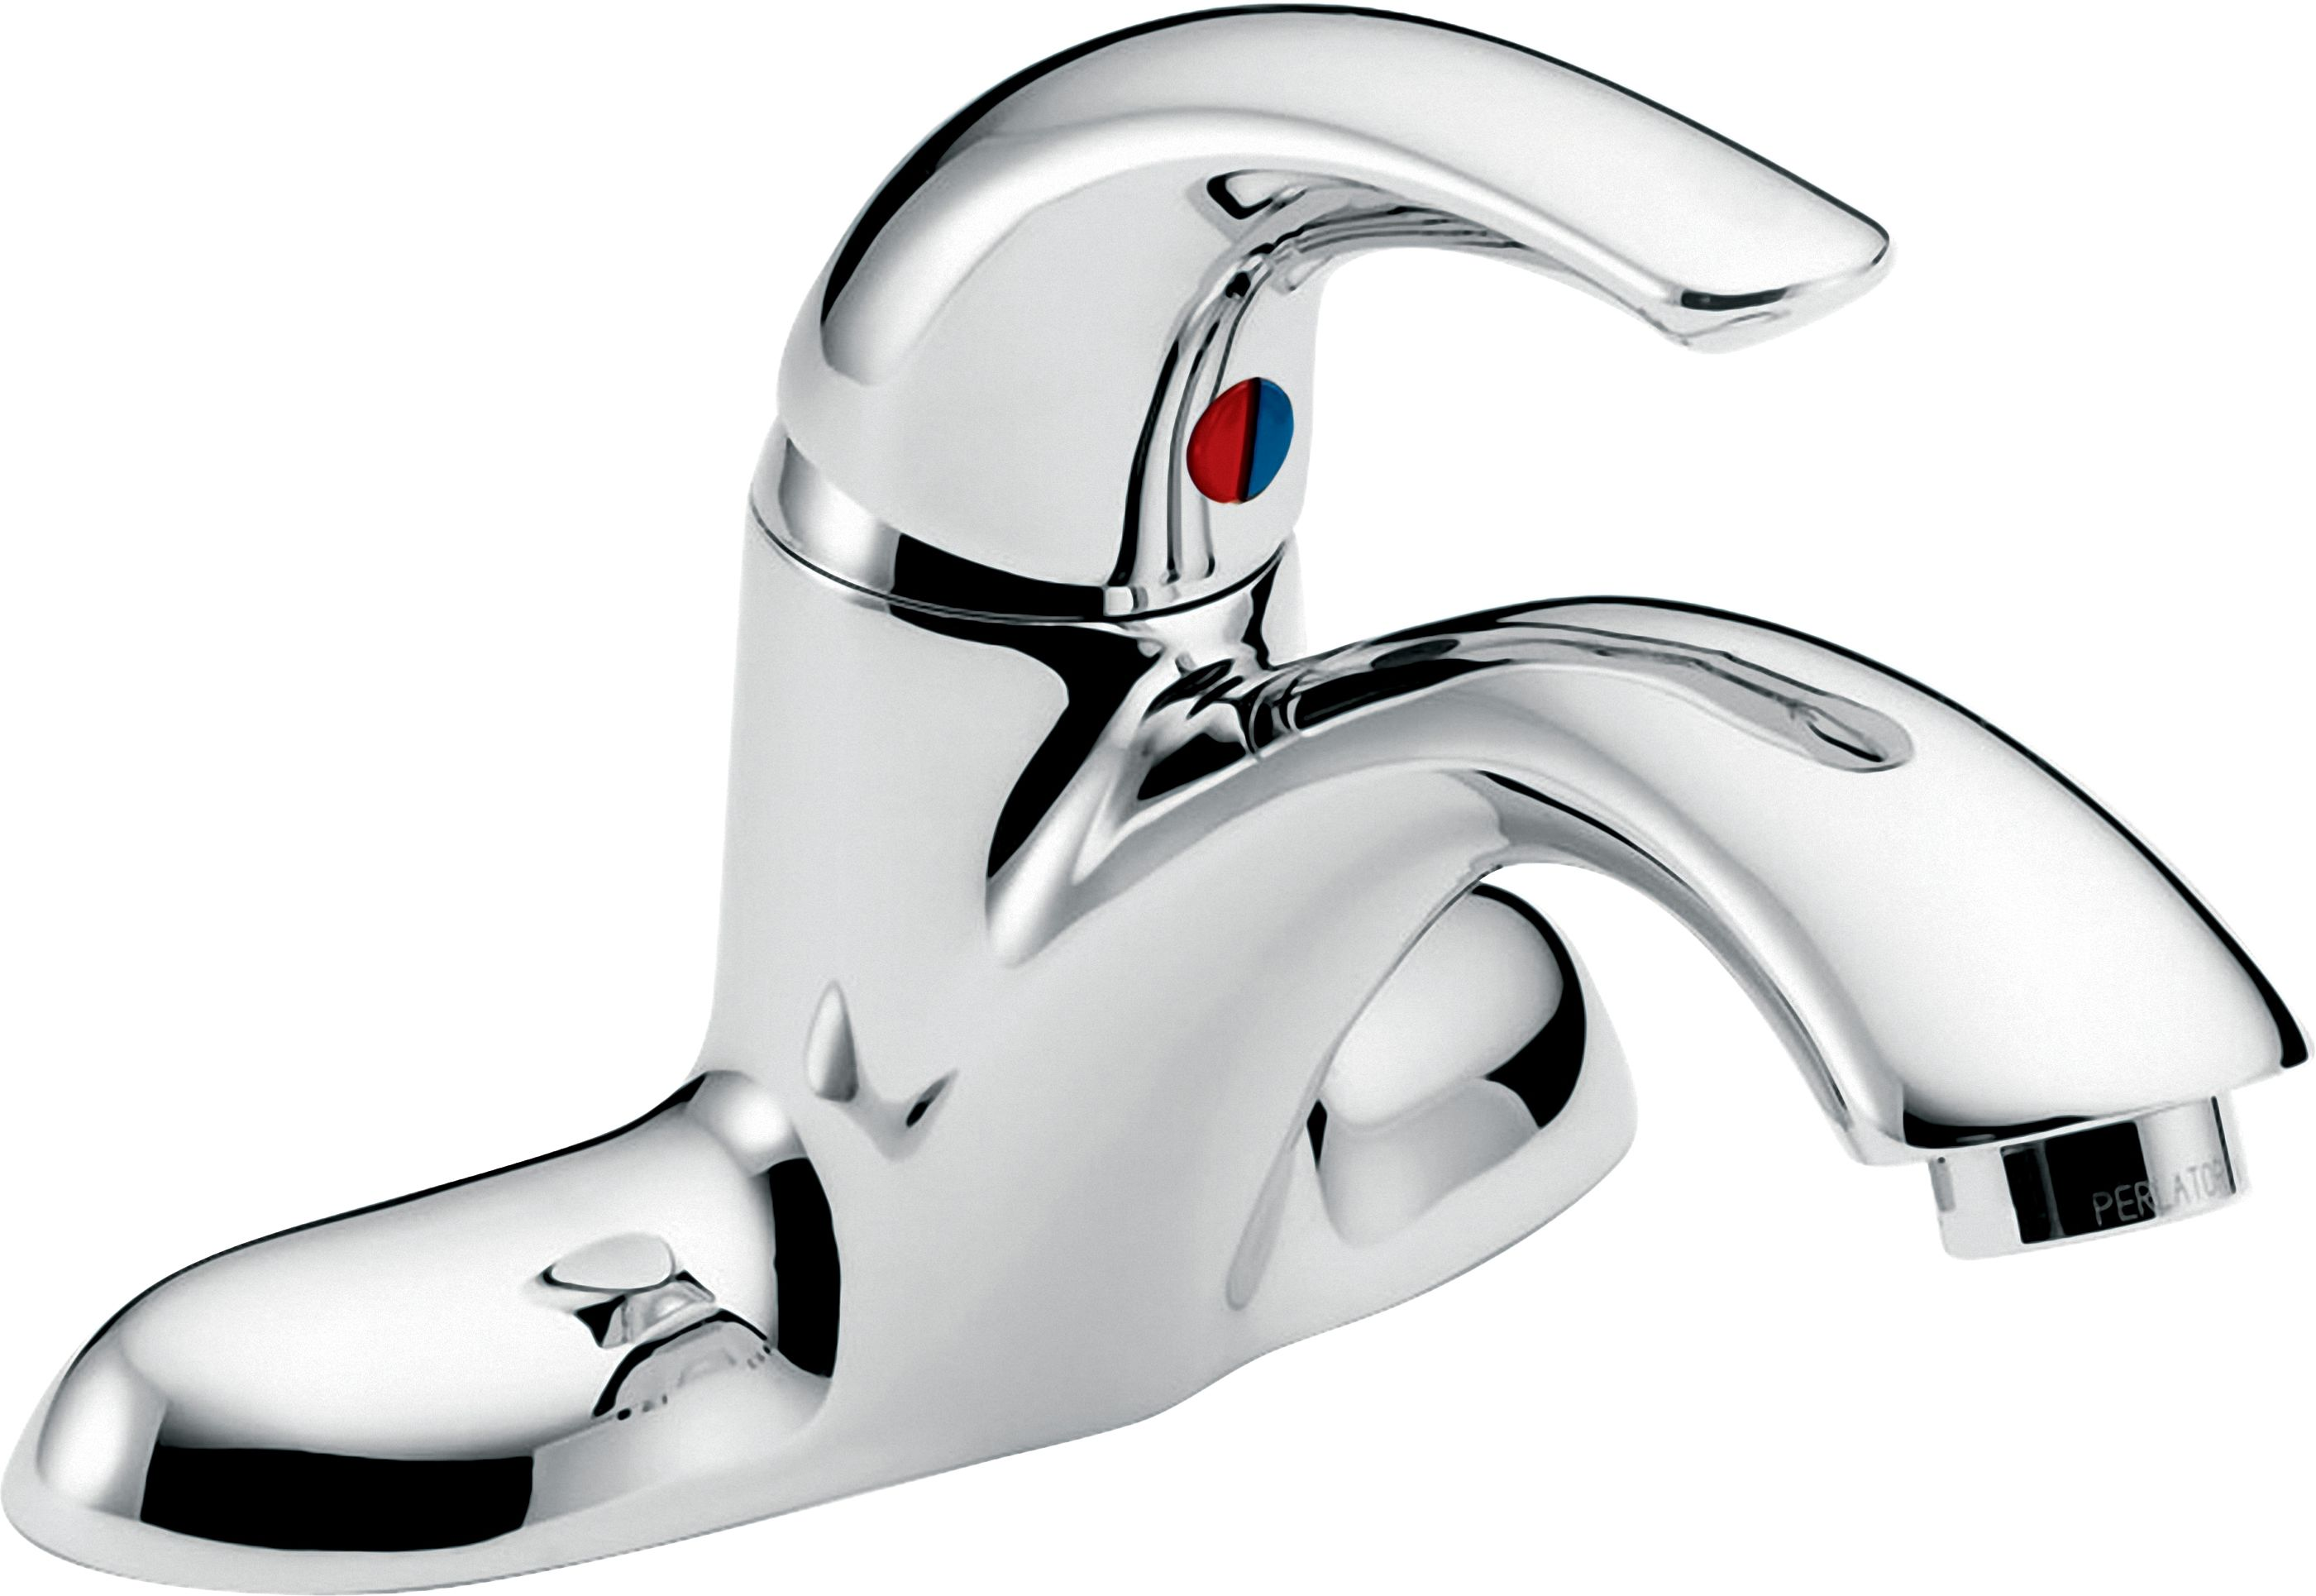 faucet home and com delta news en years business in wire dst five leadership free hands touch technologies of faucets celebrates